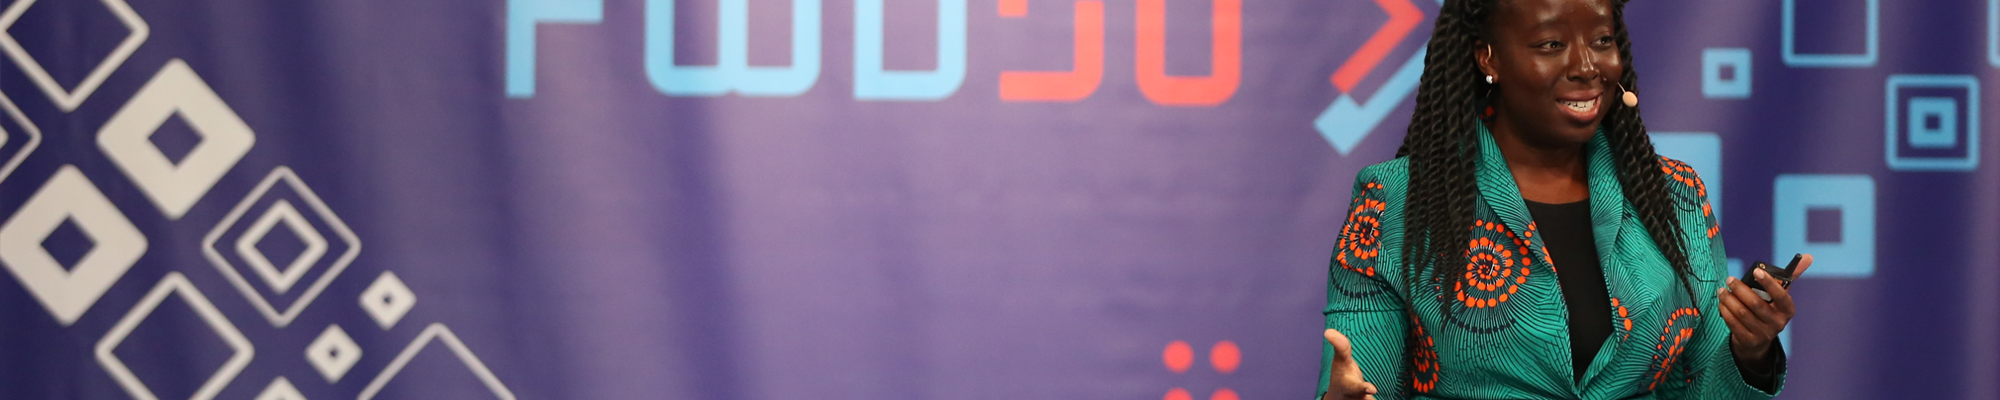 FWD50's speakers are leaders in digital government, civil society, and emerging technology.